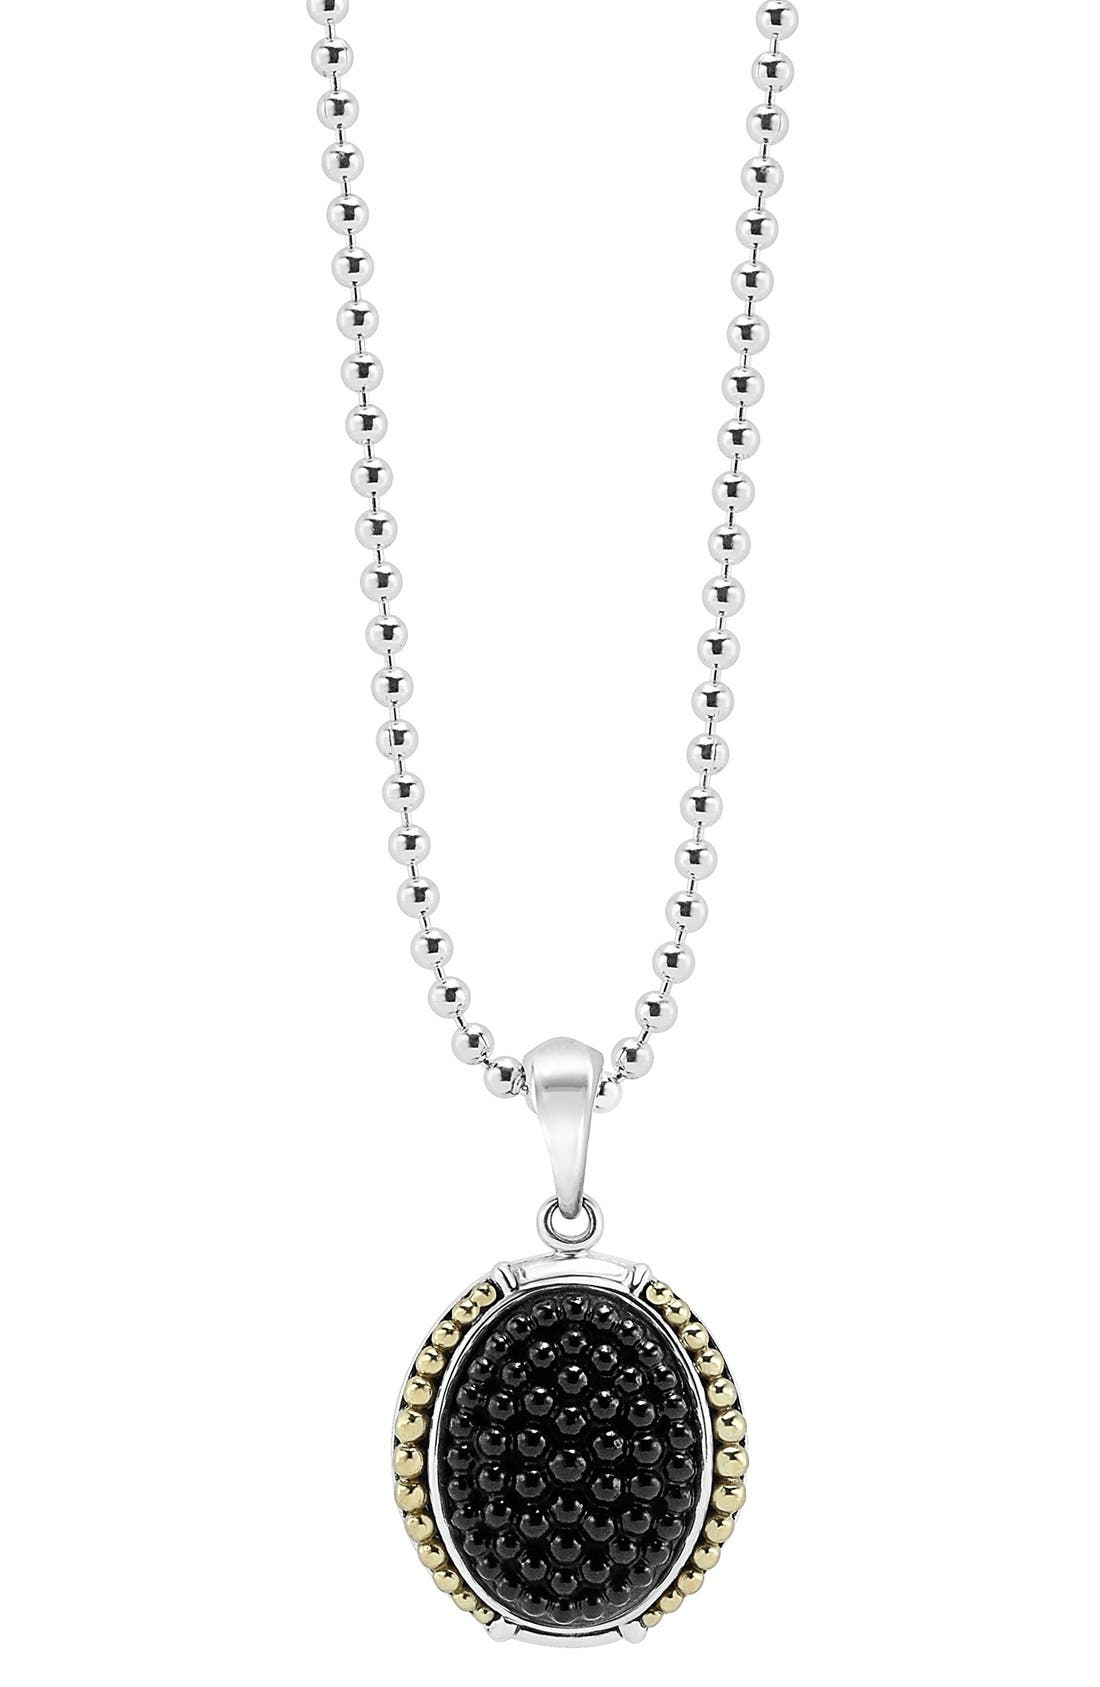 Main Image - LAGOS 'Black Caviar' Oval Pendant Necklace